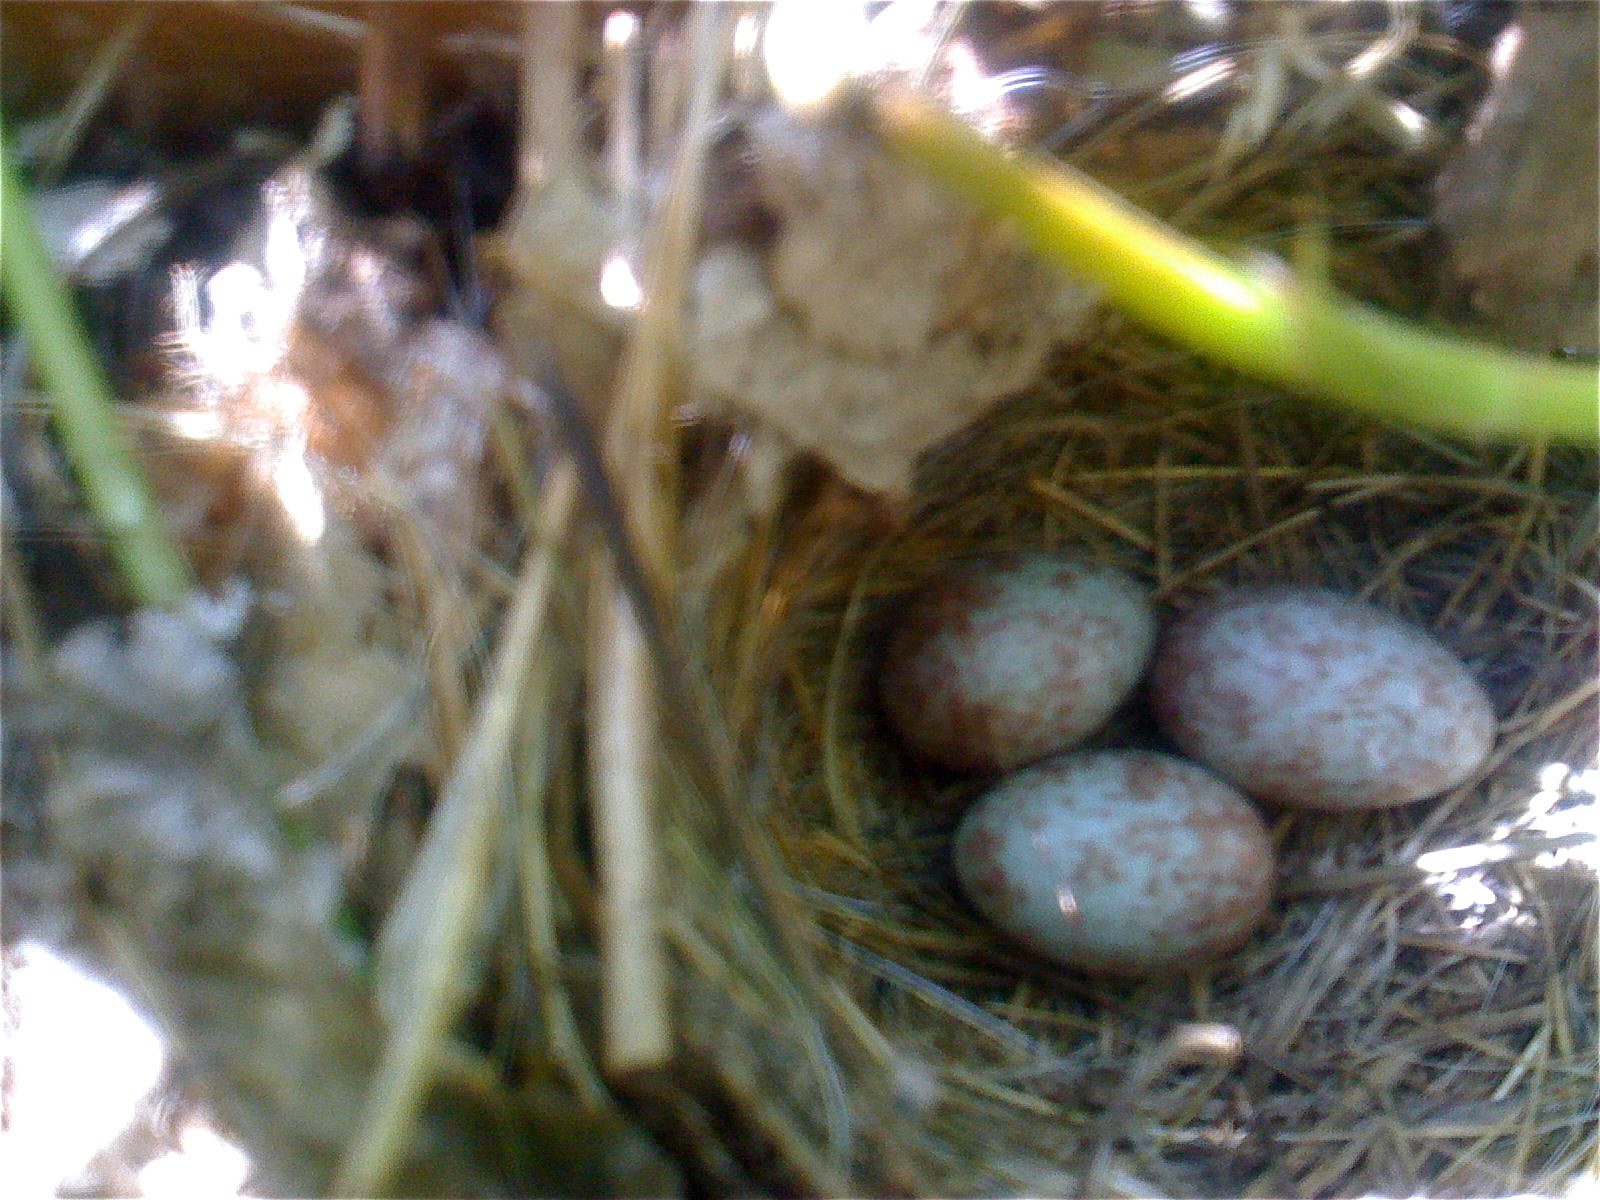 three wren's eggs in a nest on the ground in the strawberry patch